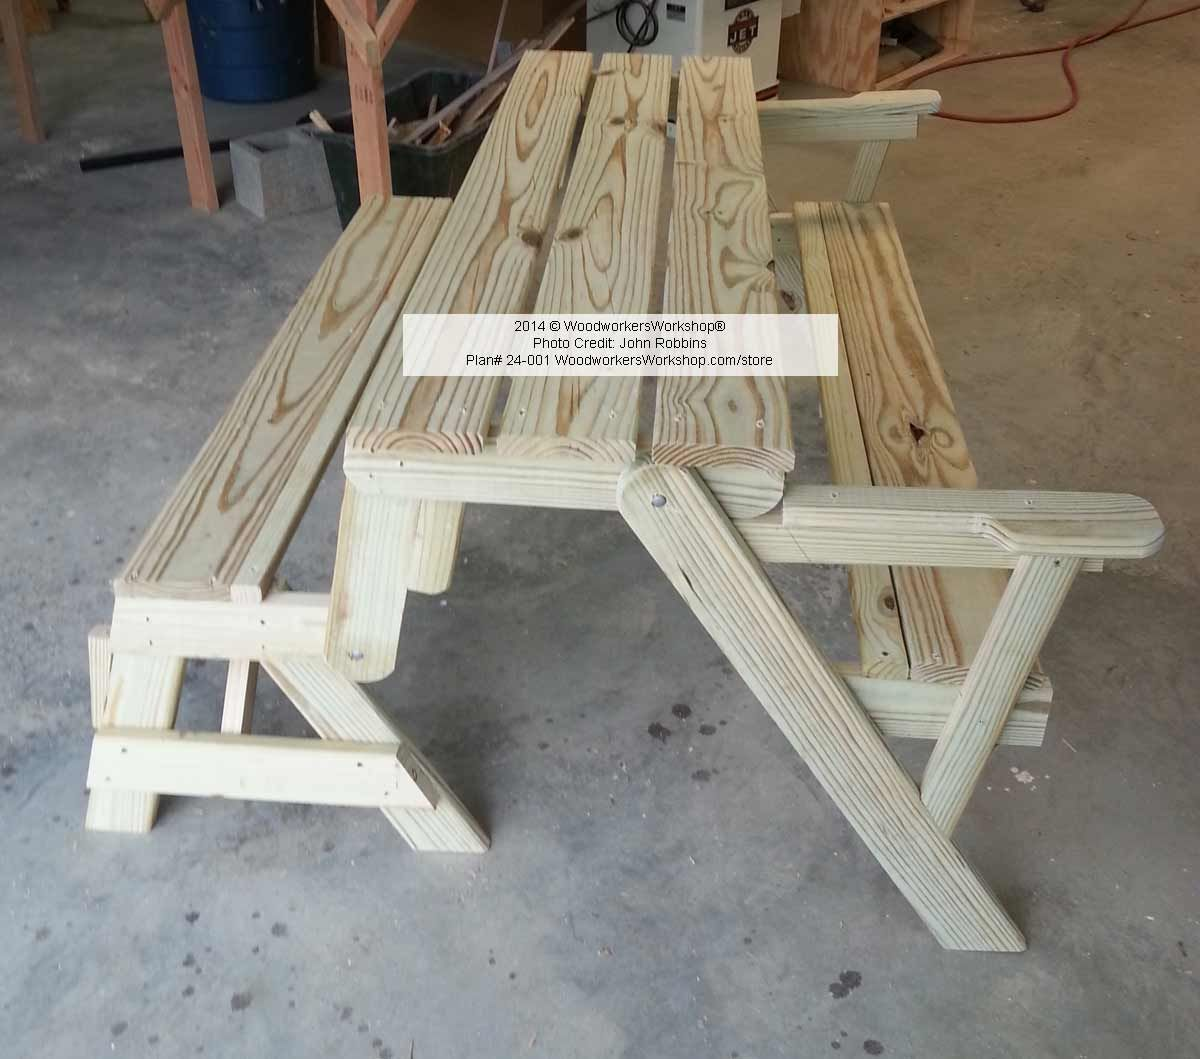 Folding Chair Picnic Table Nfl Football Helmet Chairs Bench Woodworking Plan With Full Size